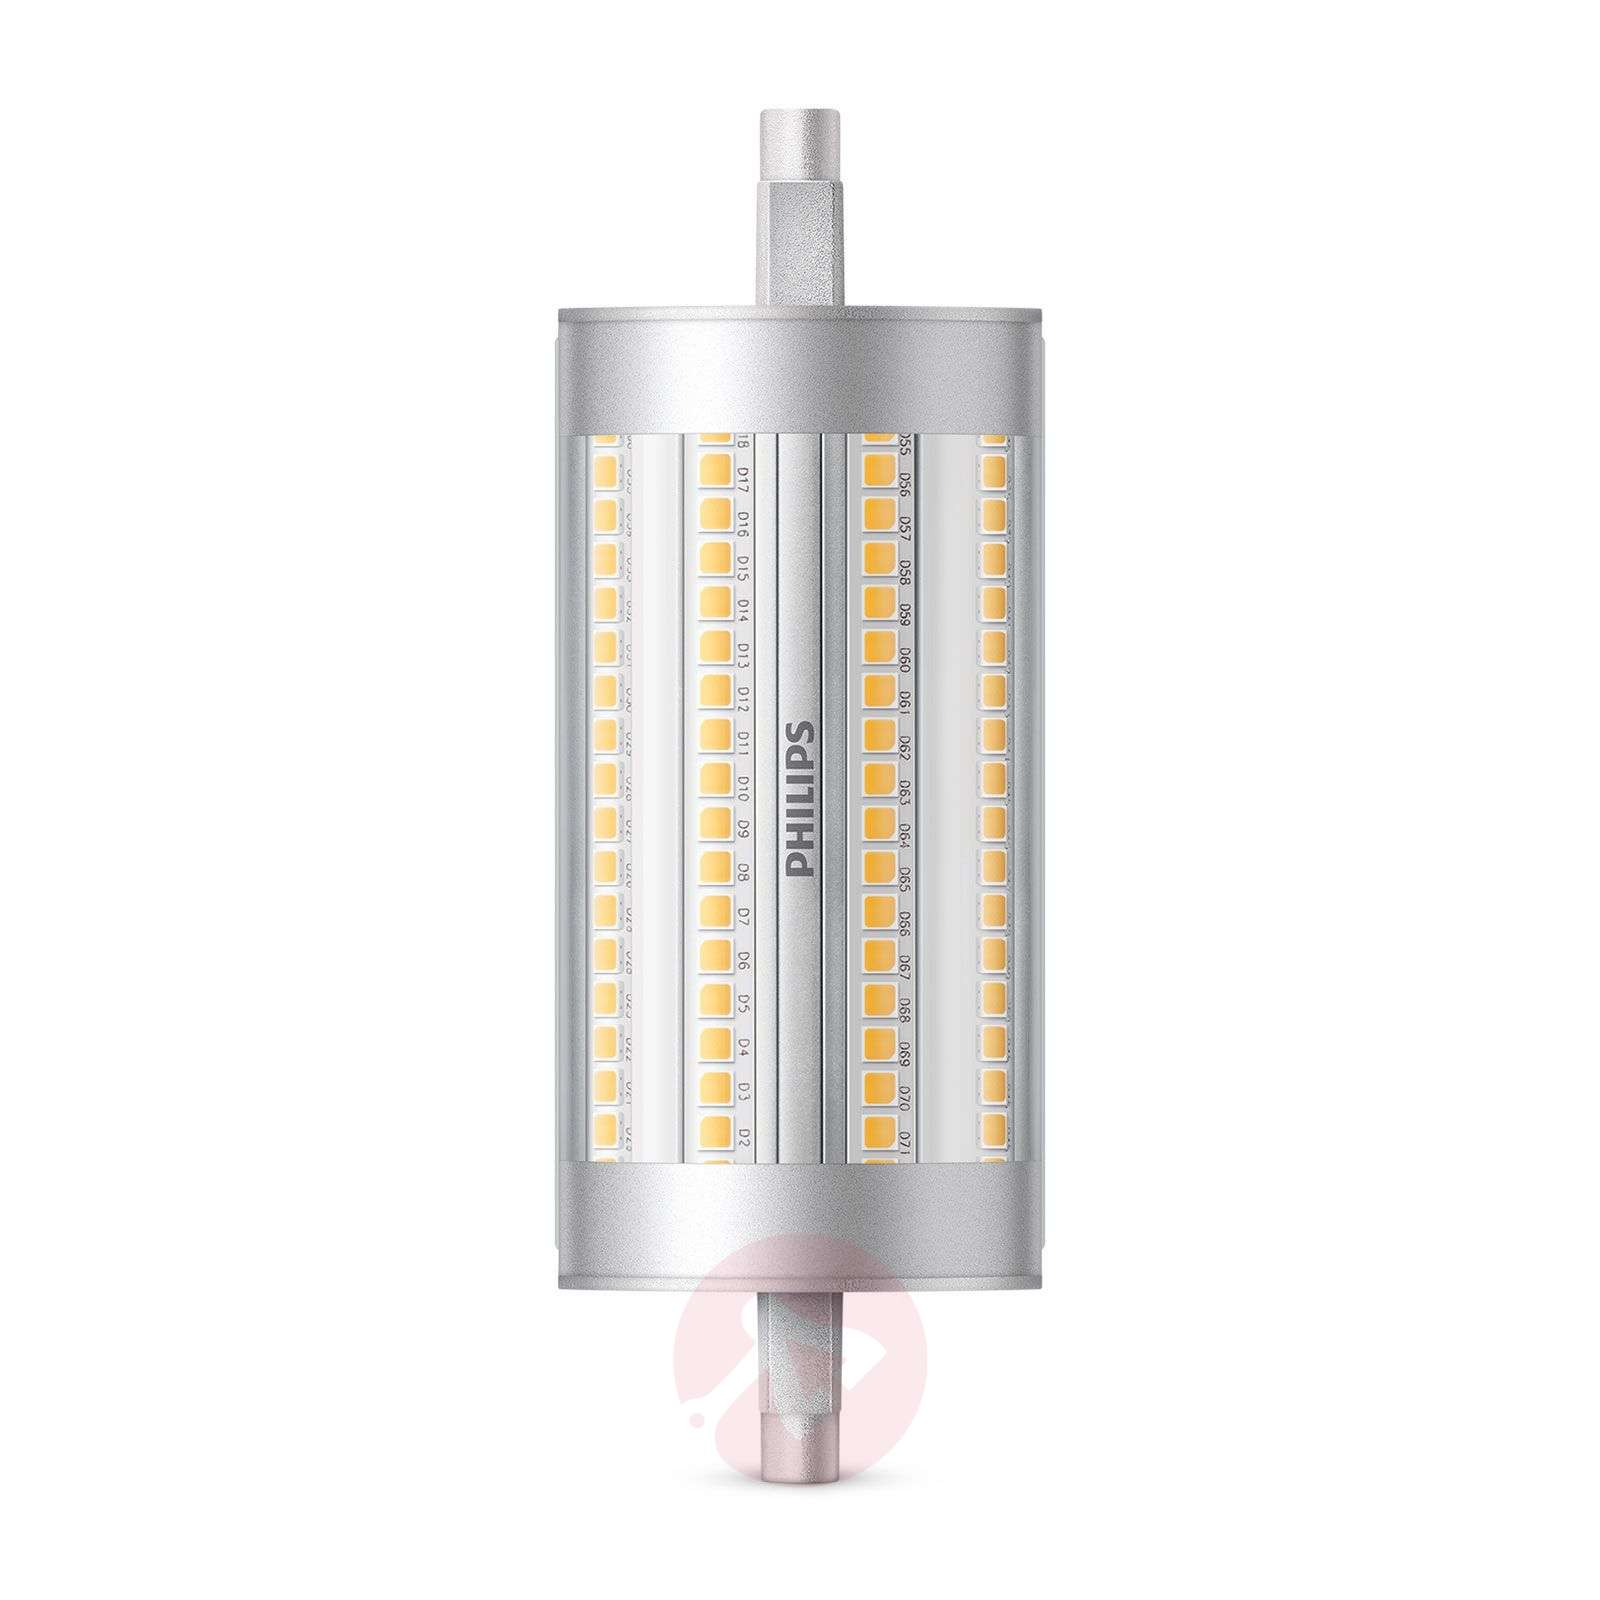 Philips ampoule LED R7S 17,5 W 3 000 K dimmable